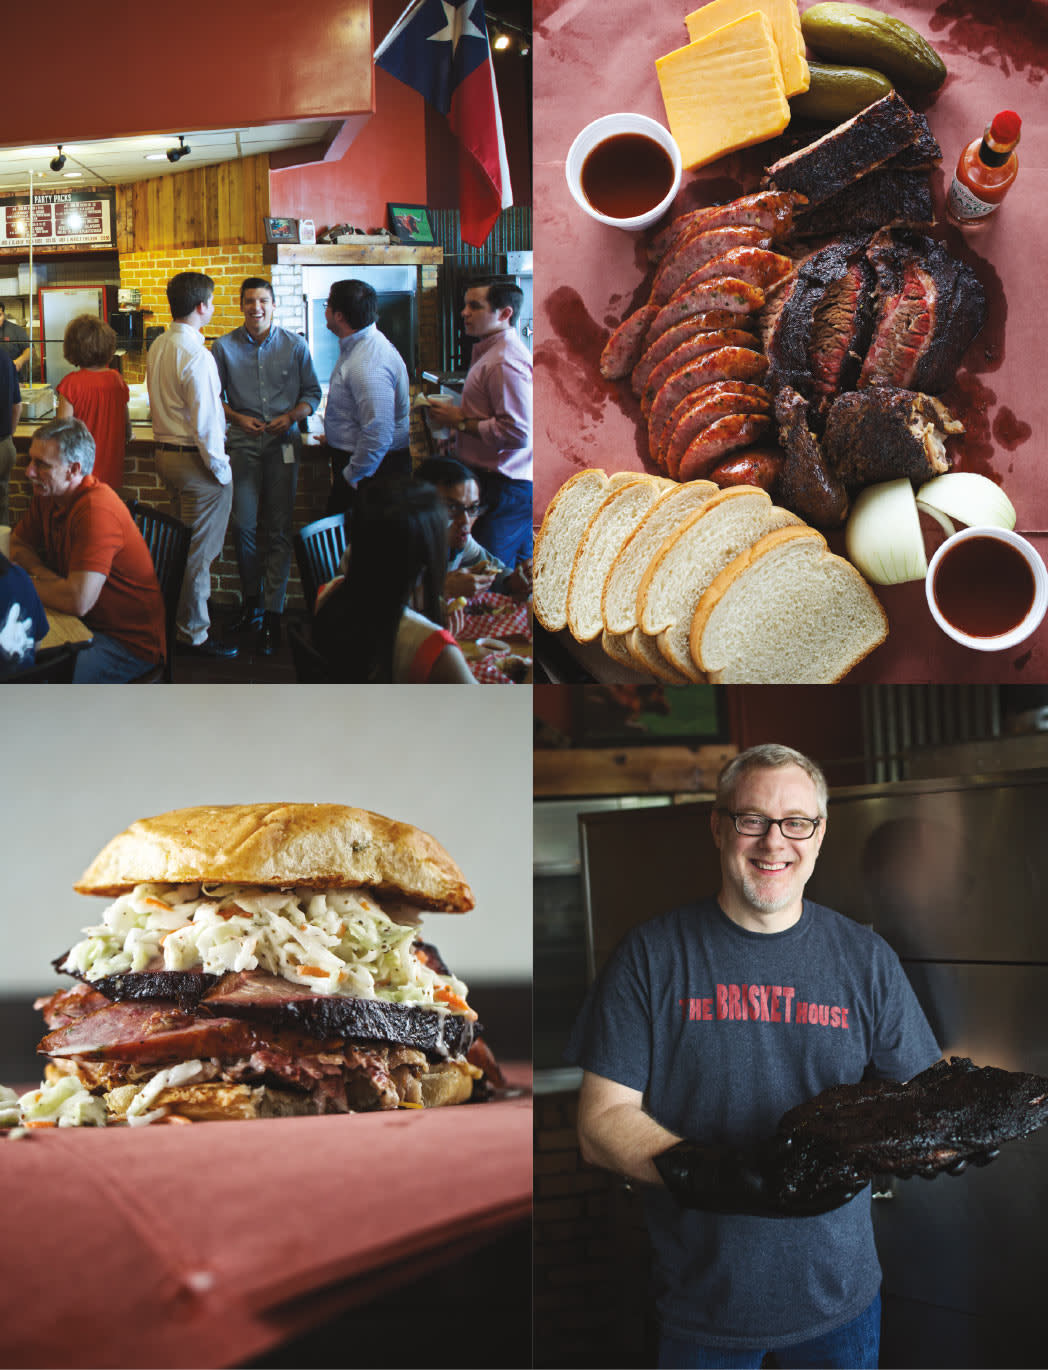 0815 the brisket house collage vo2gny